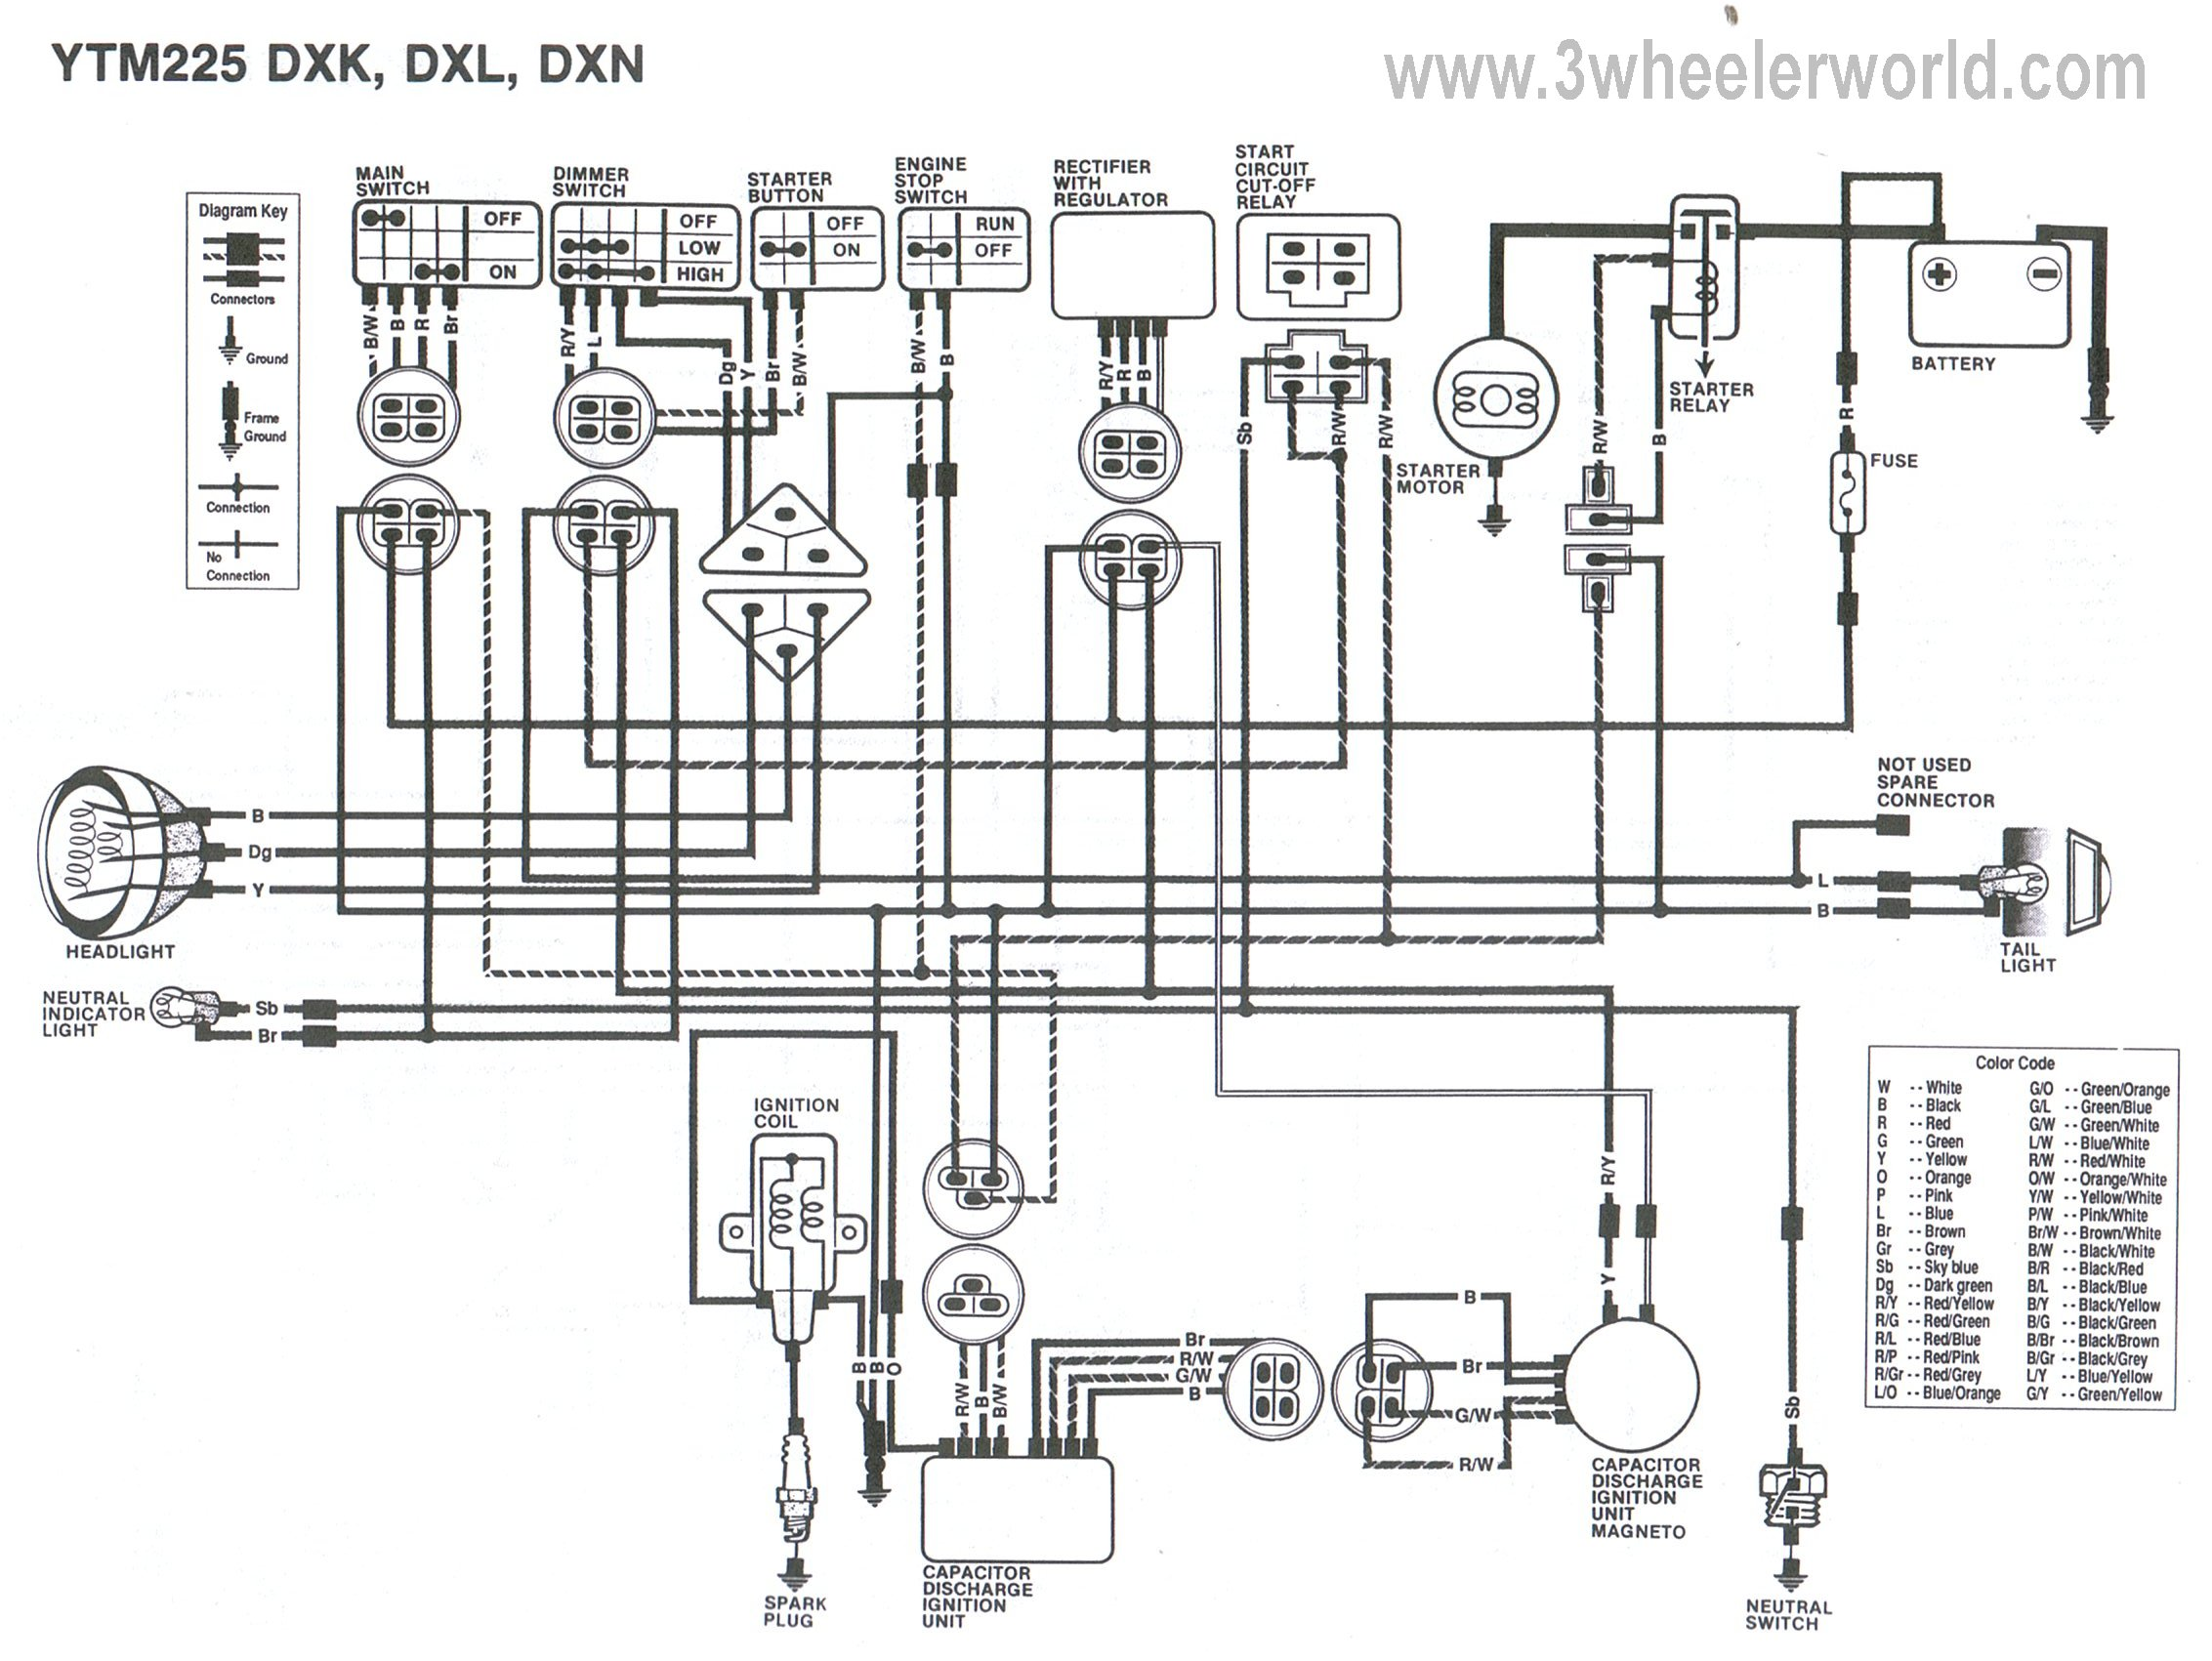 YTM225DXKDXLDXN 3 wheeler world tech help yamaha wiring diagrams yamaha wiring harness diagram at readyjetset.co